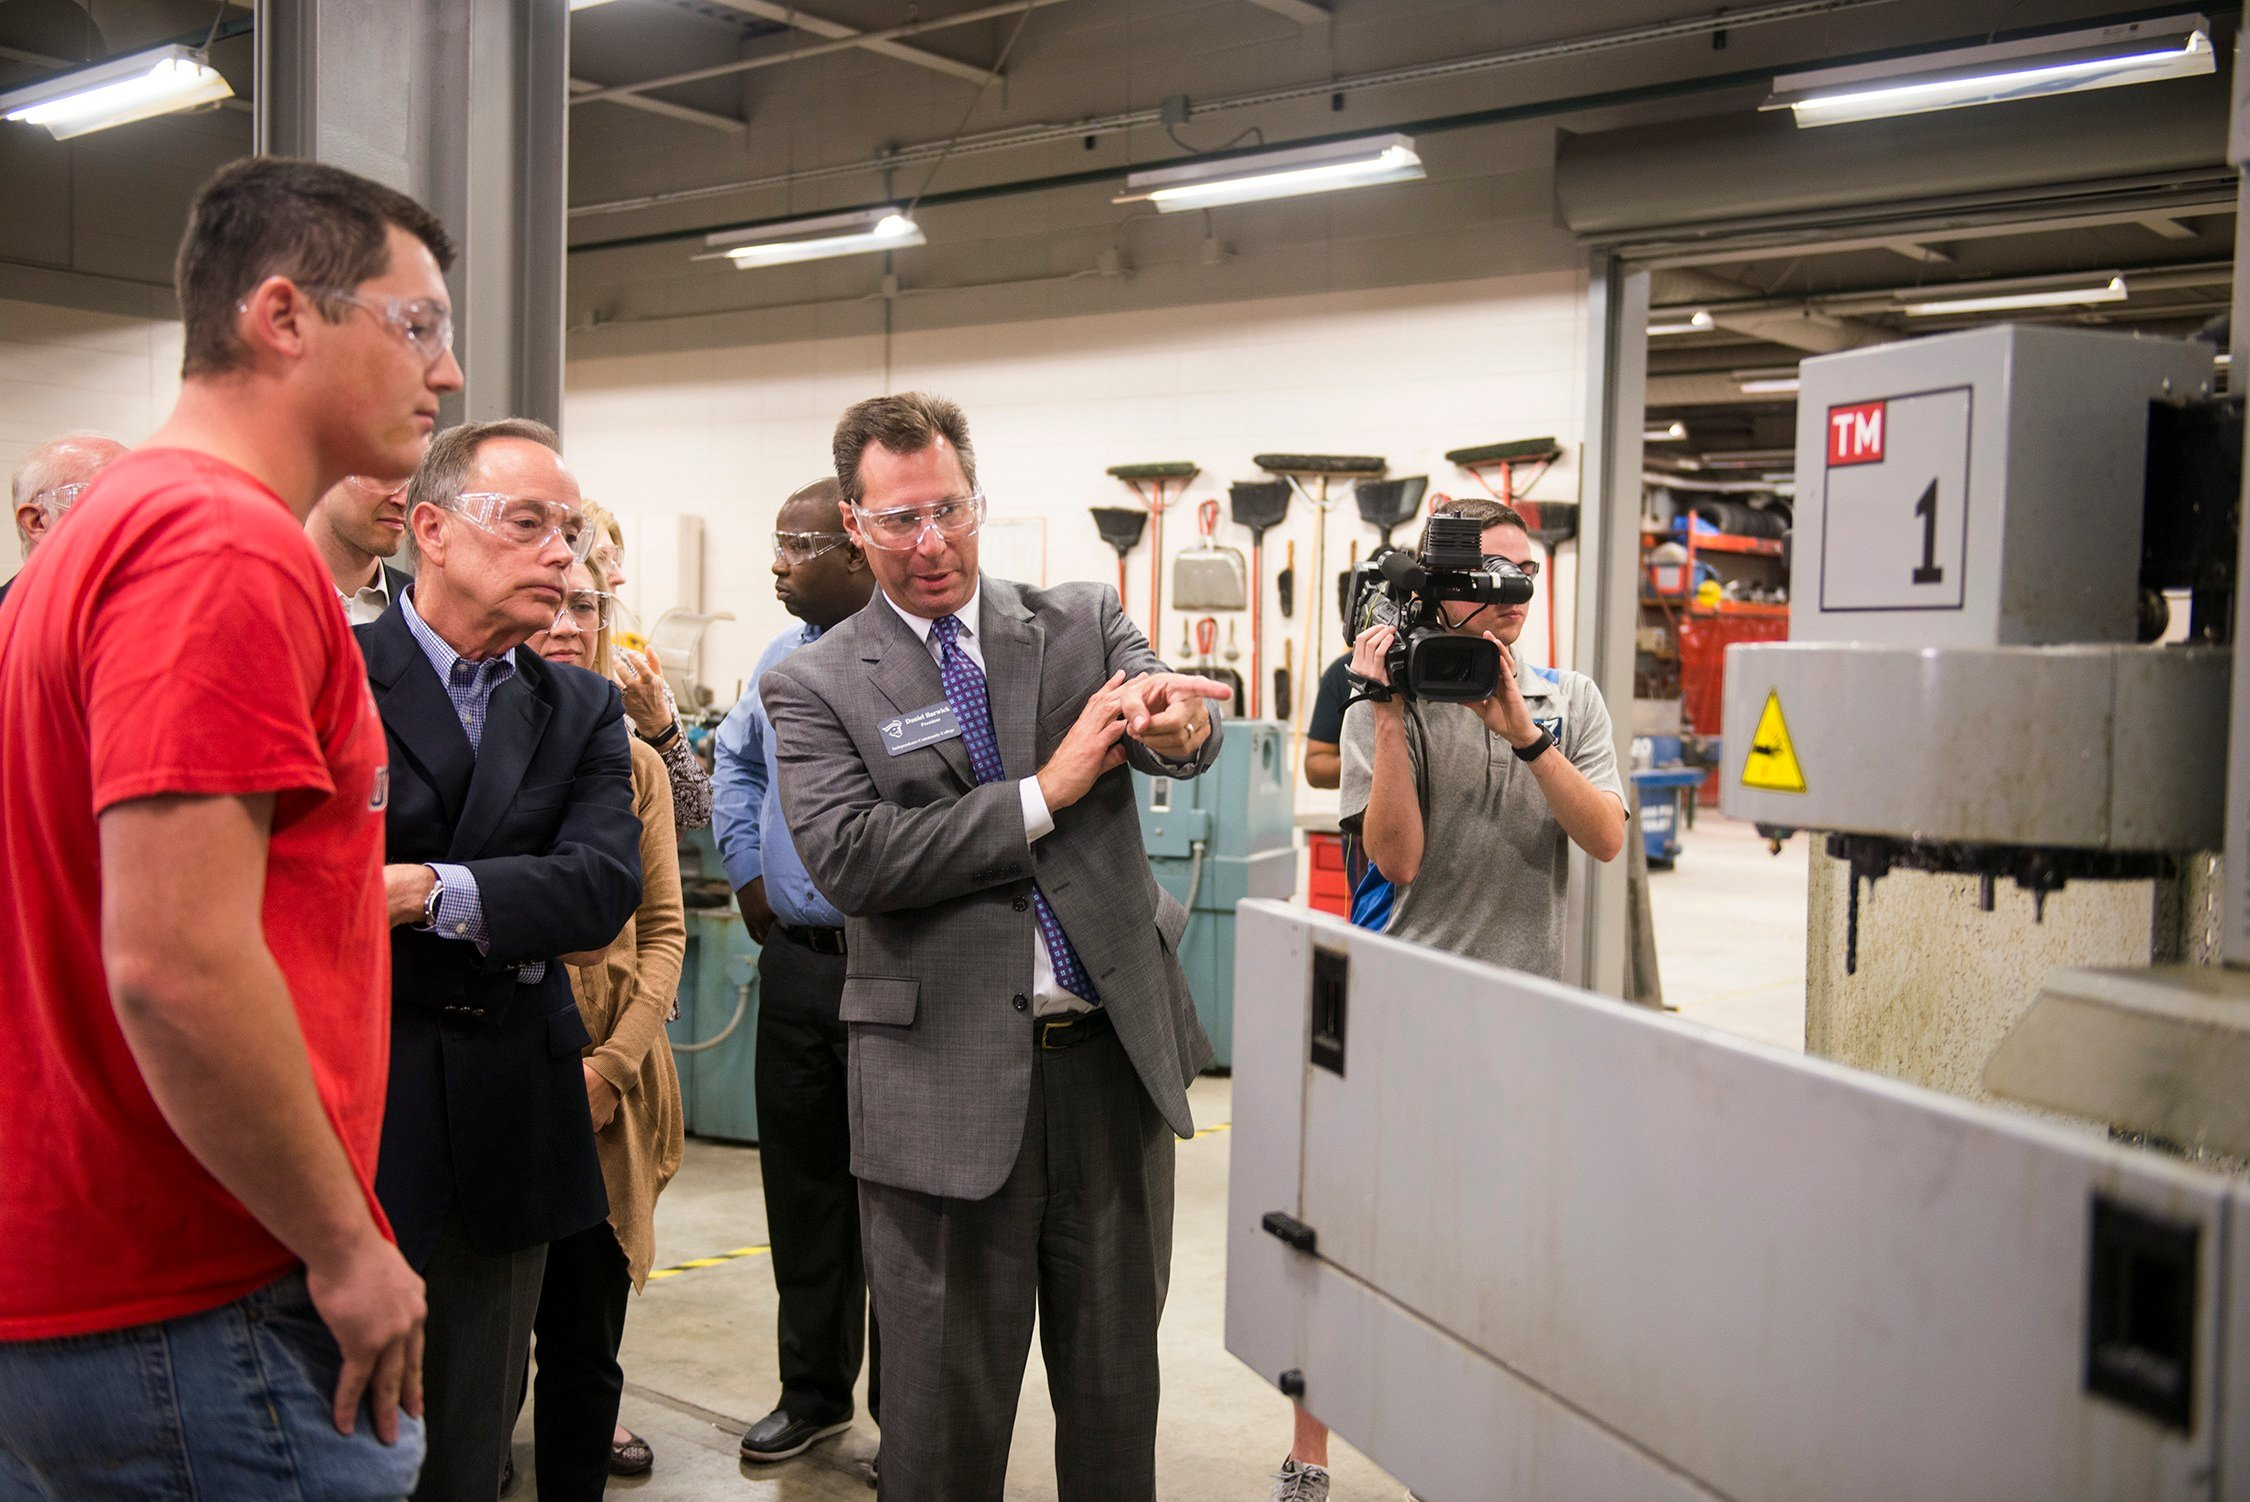 Daniel Barwick (right), president of Independence Community College, and Steve Scott, president of Pittsburg State University, discuss elements of a CNC machine with Eric Bradshaw (left), a senior from Independence, Kansas, at the Kansas Technology Center